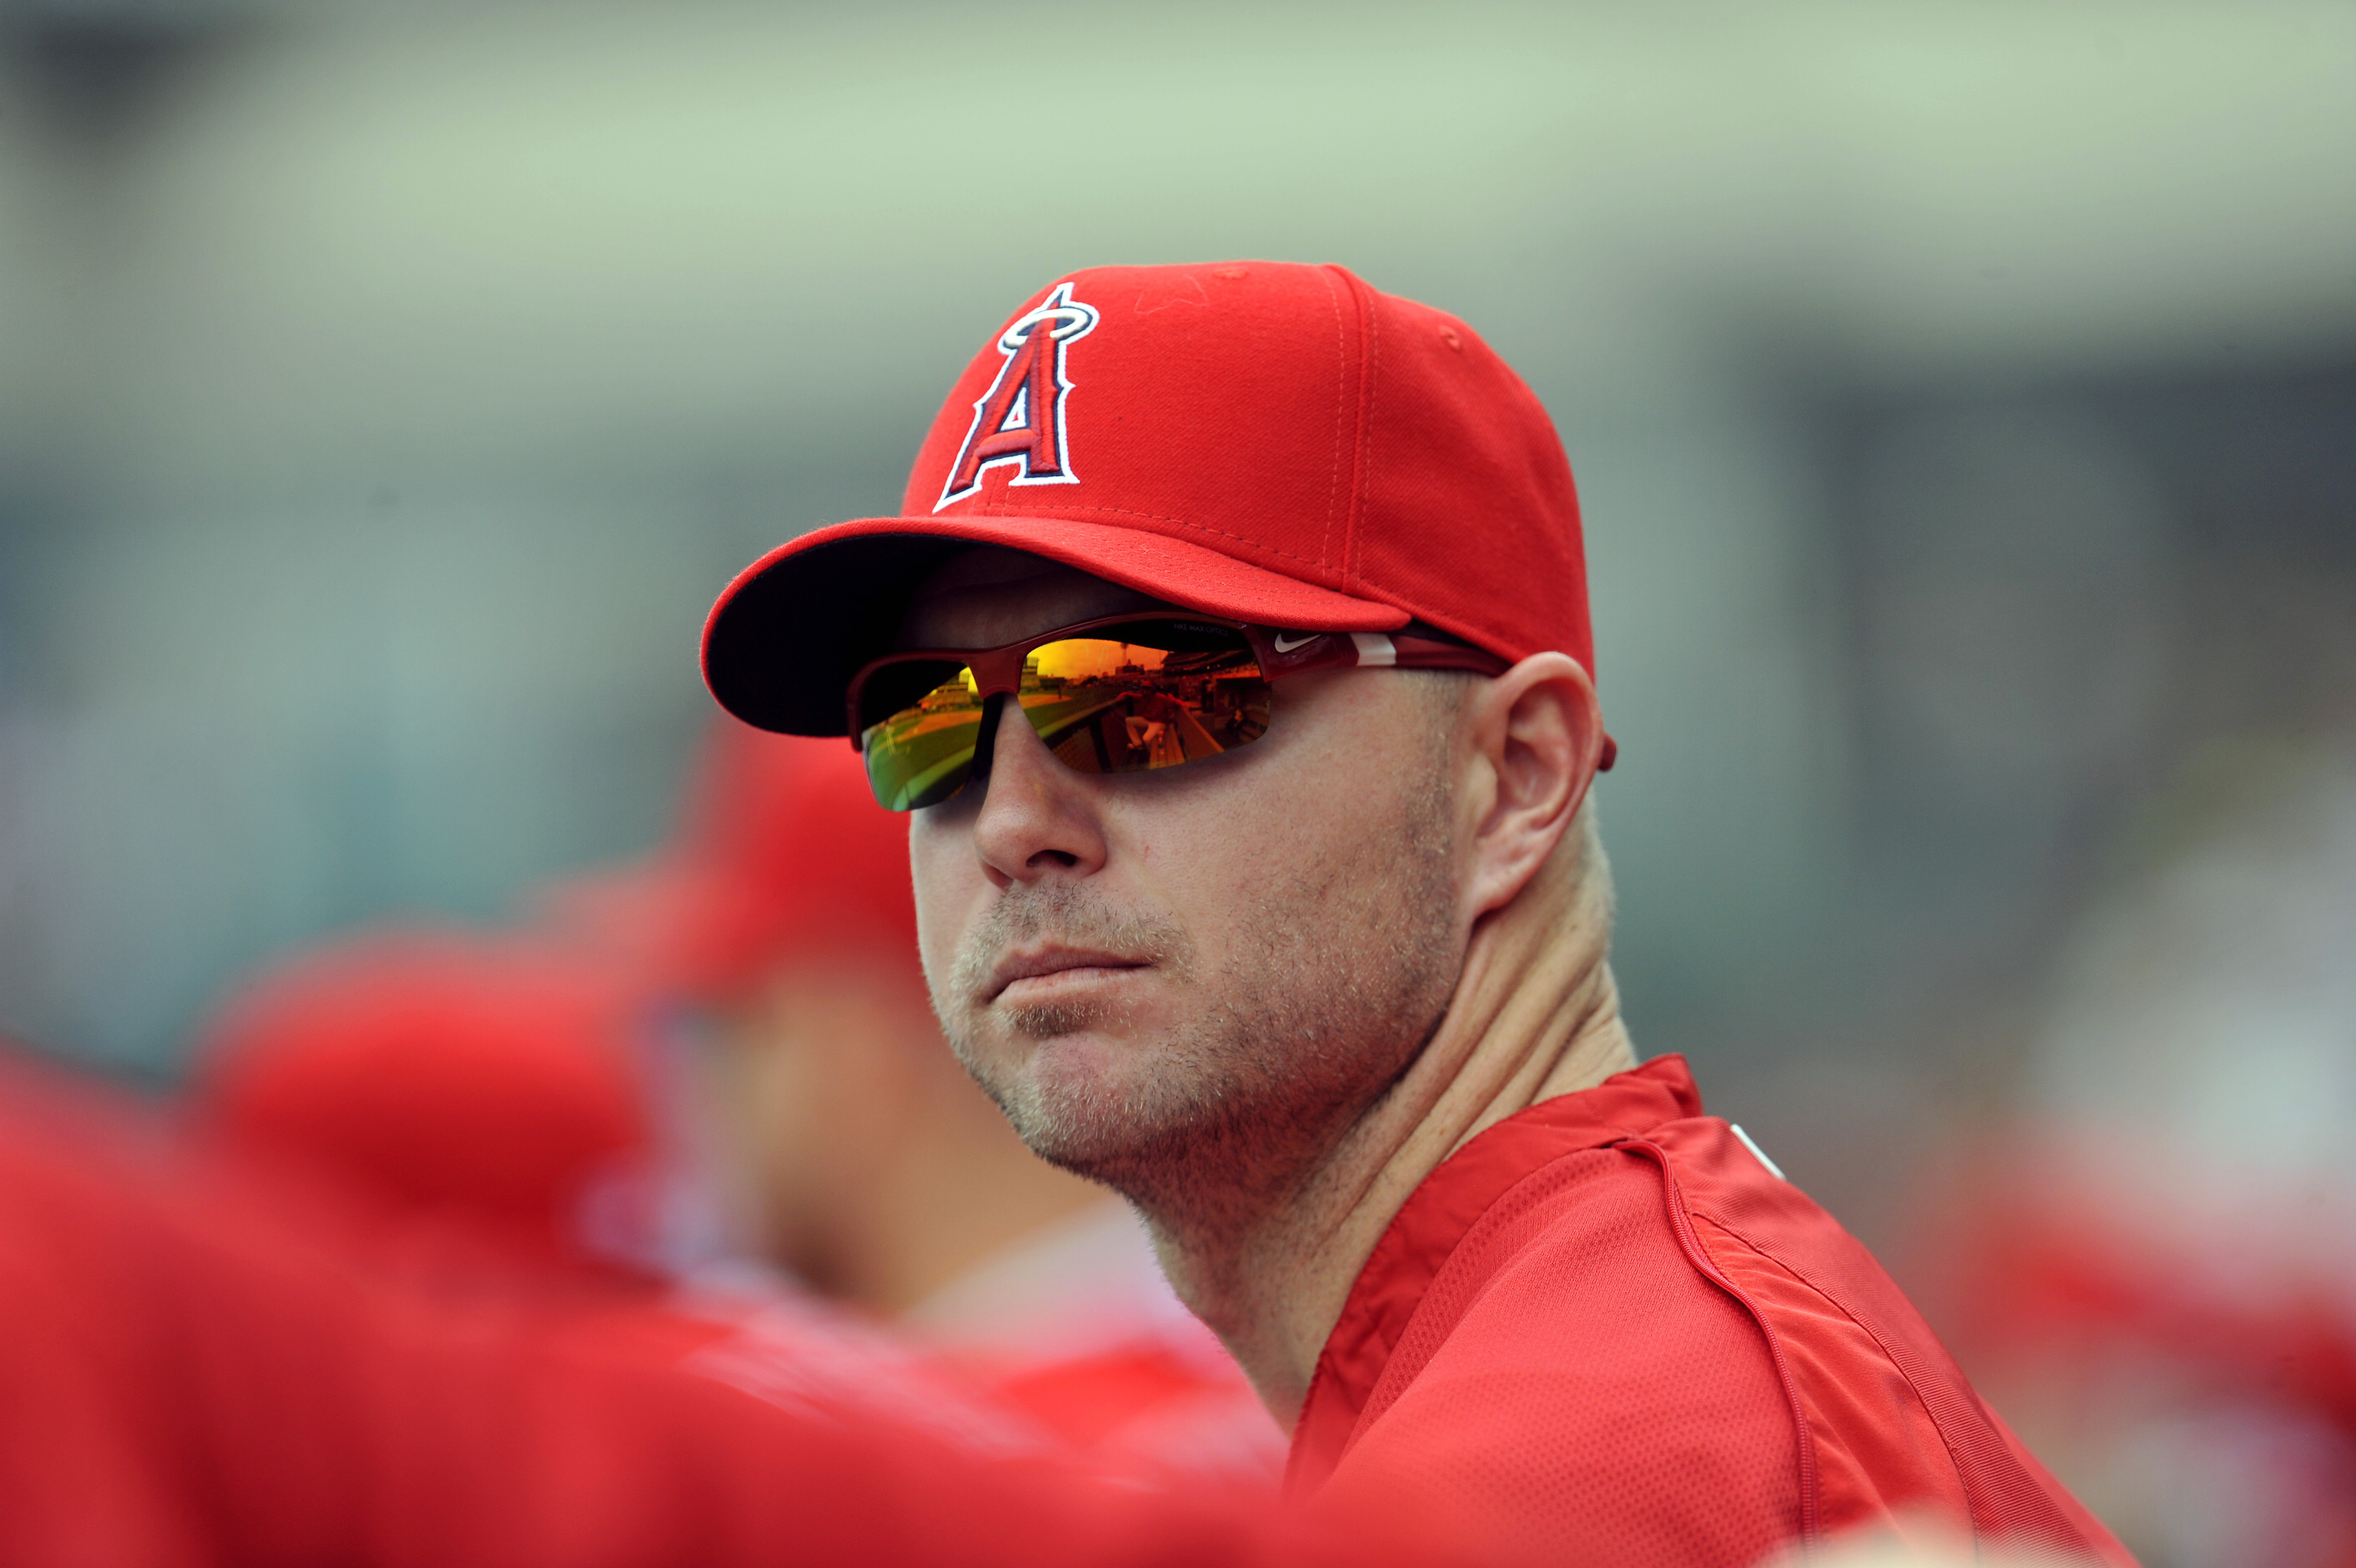 Angels' Ryan Madson believes legalizing HGH would help his recovery